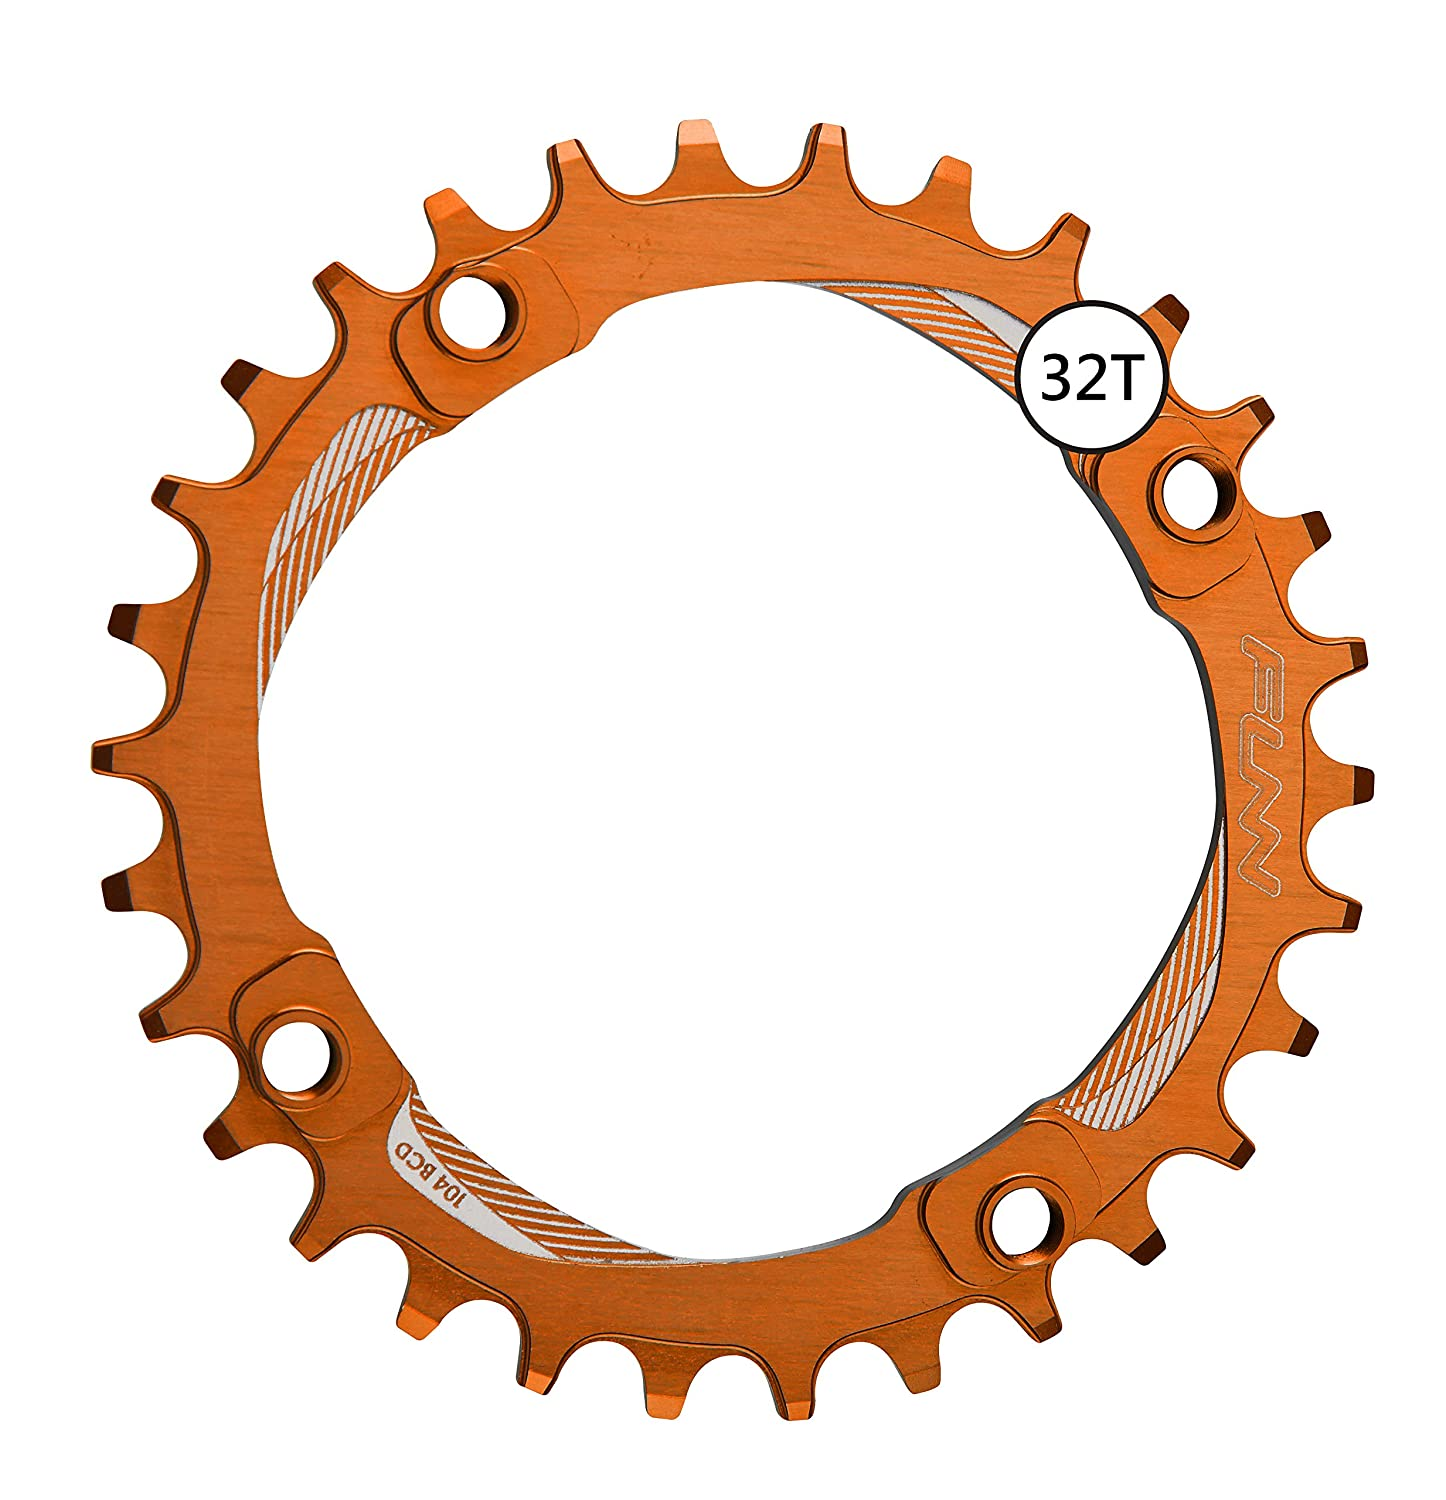 FunnソロNarrow Wide Chainring 32t B073ZF47YP オレンジ オレンジ